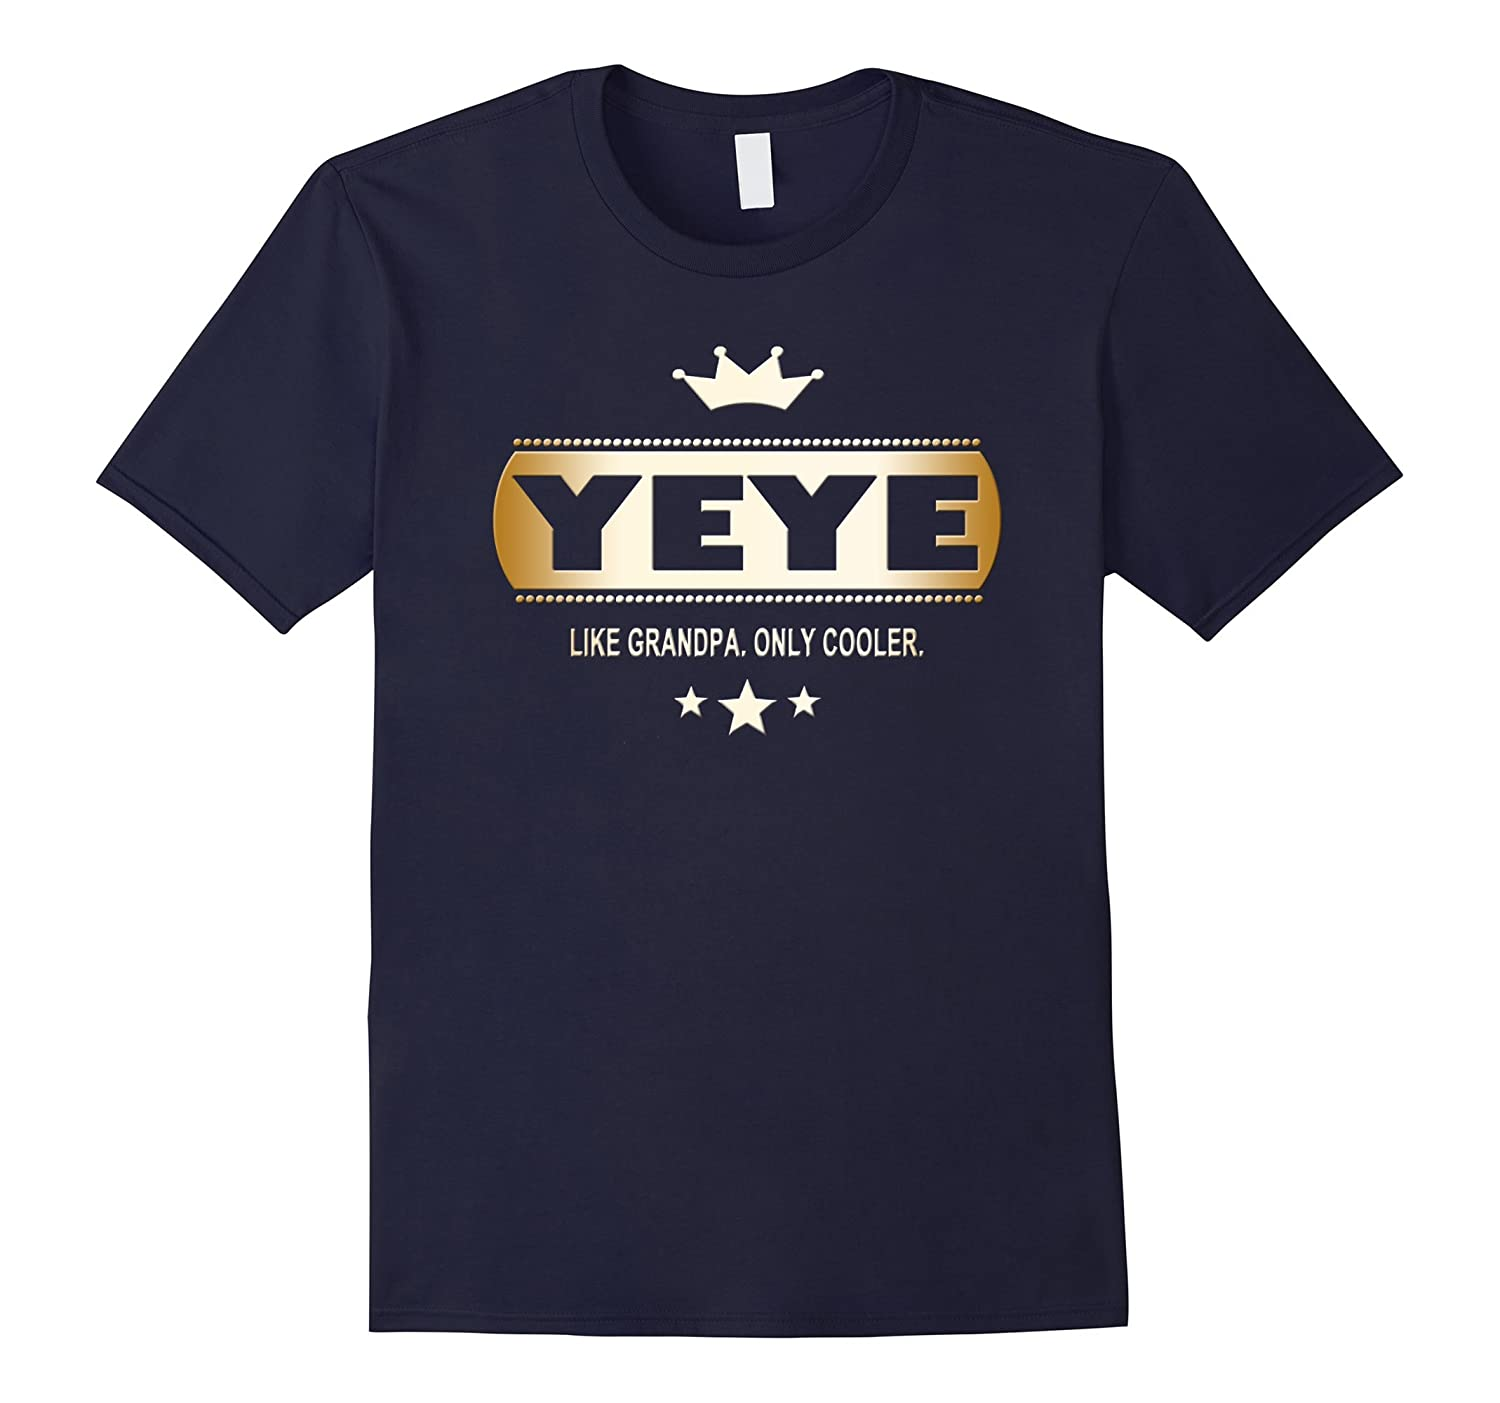 Yeye Like Grandpa Only Cooler Tee-Shirt in Mandarin Chinese-TH